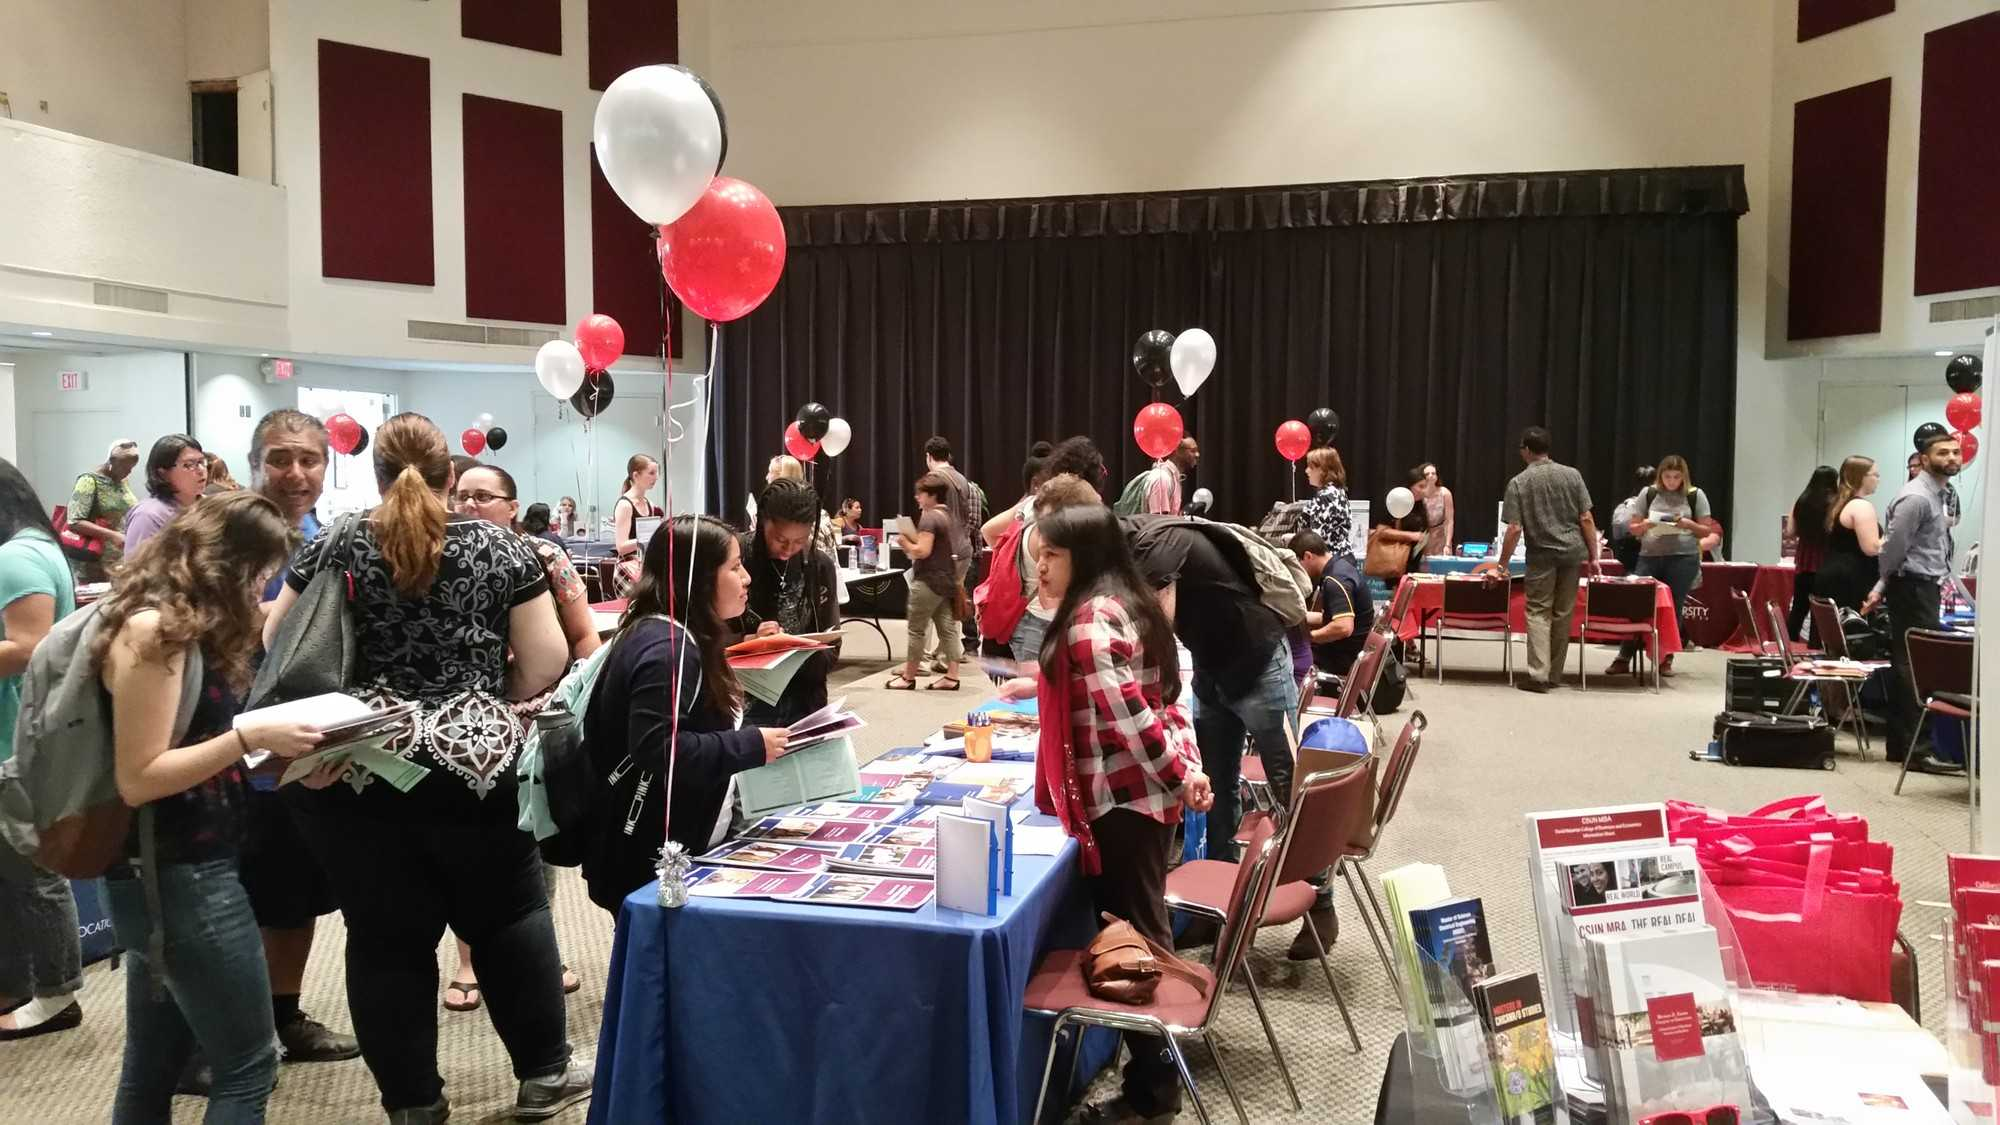 Past+and+present+CSUN+students+browse+booths+at+the+Grad+%26+Professional+School+Info+Day+in+the+Northridge+Center+at+the+USU.+Sept.+24%2C+2015.+Photo+credit%3A+Vanessa+Barajas